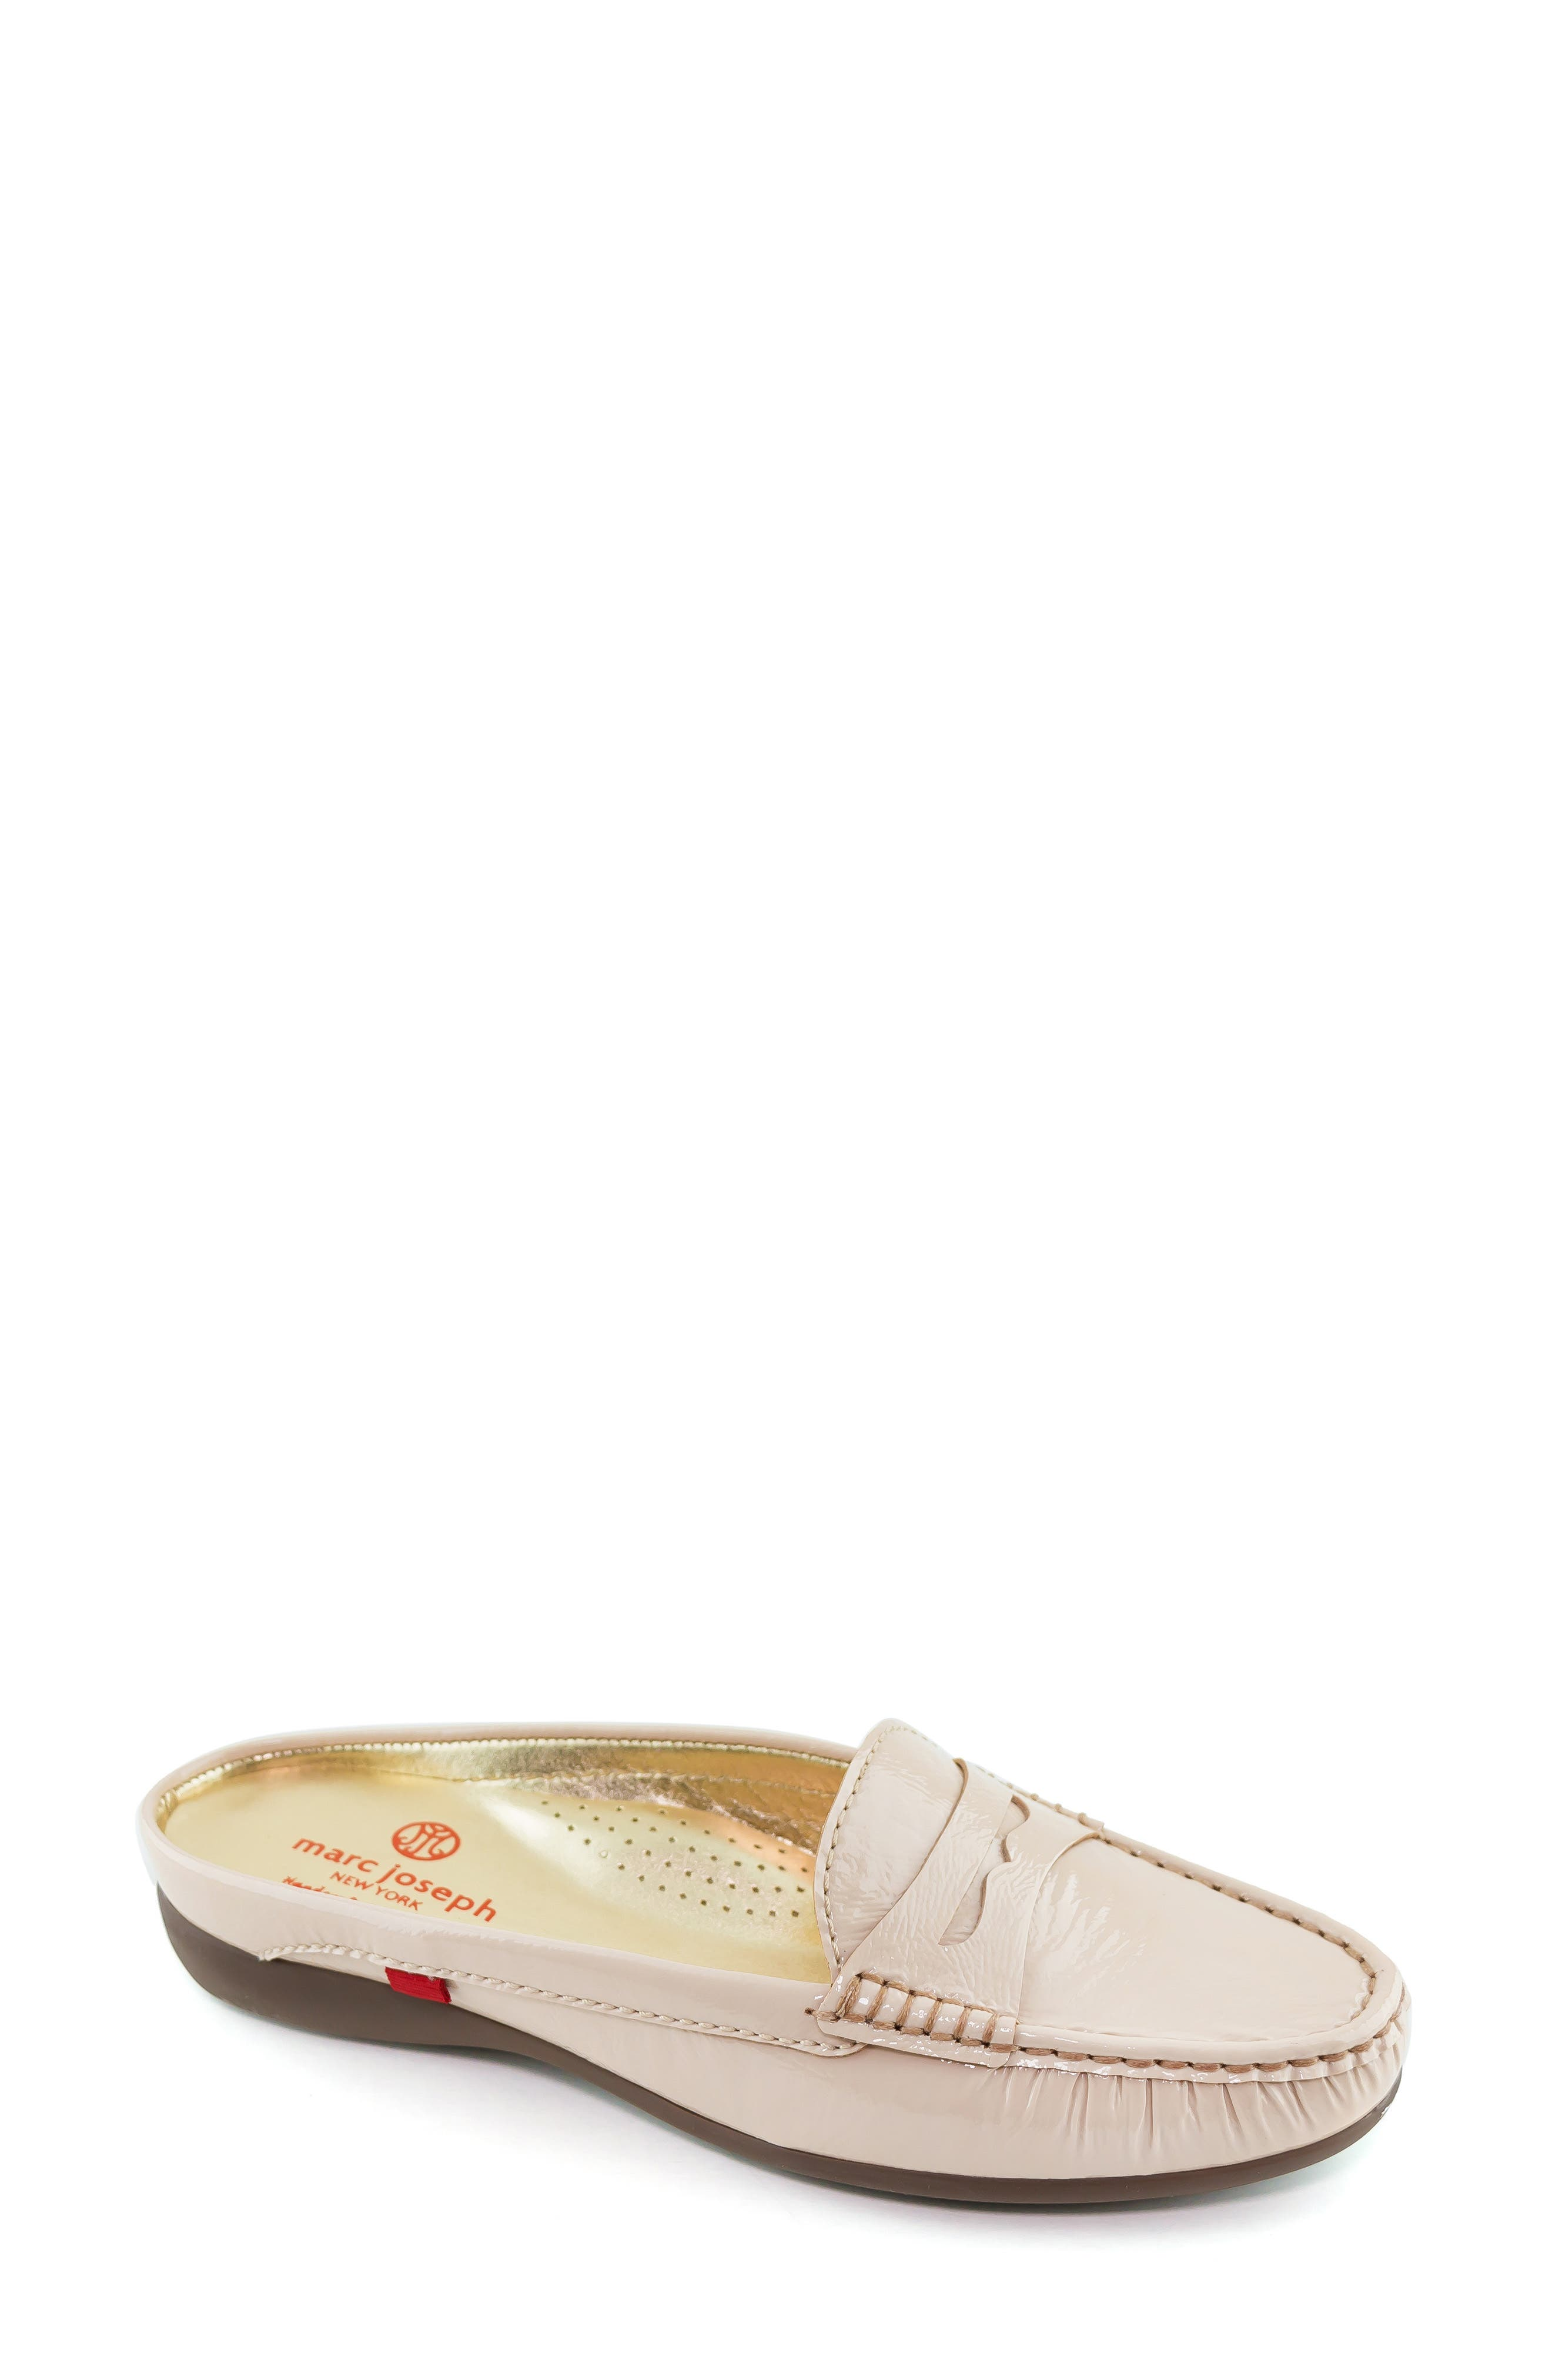 Union Street Mule,                             Main thumbnail 1, color,                             NUDE PATENT